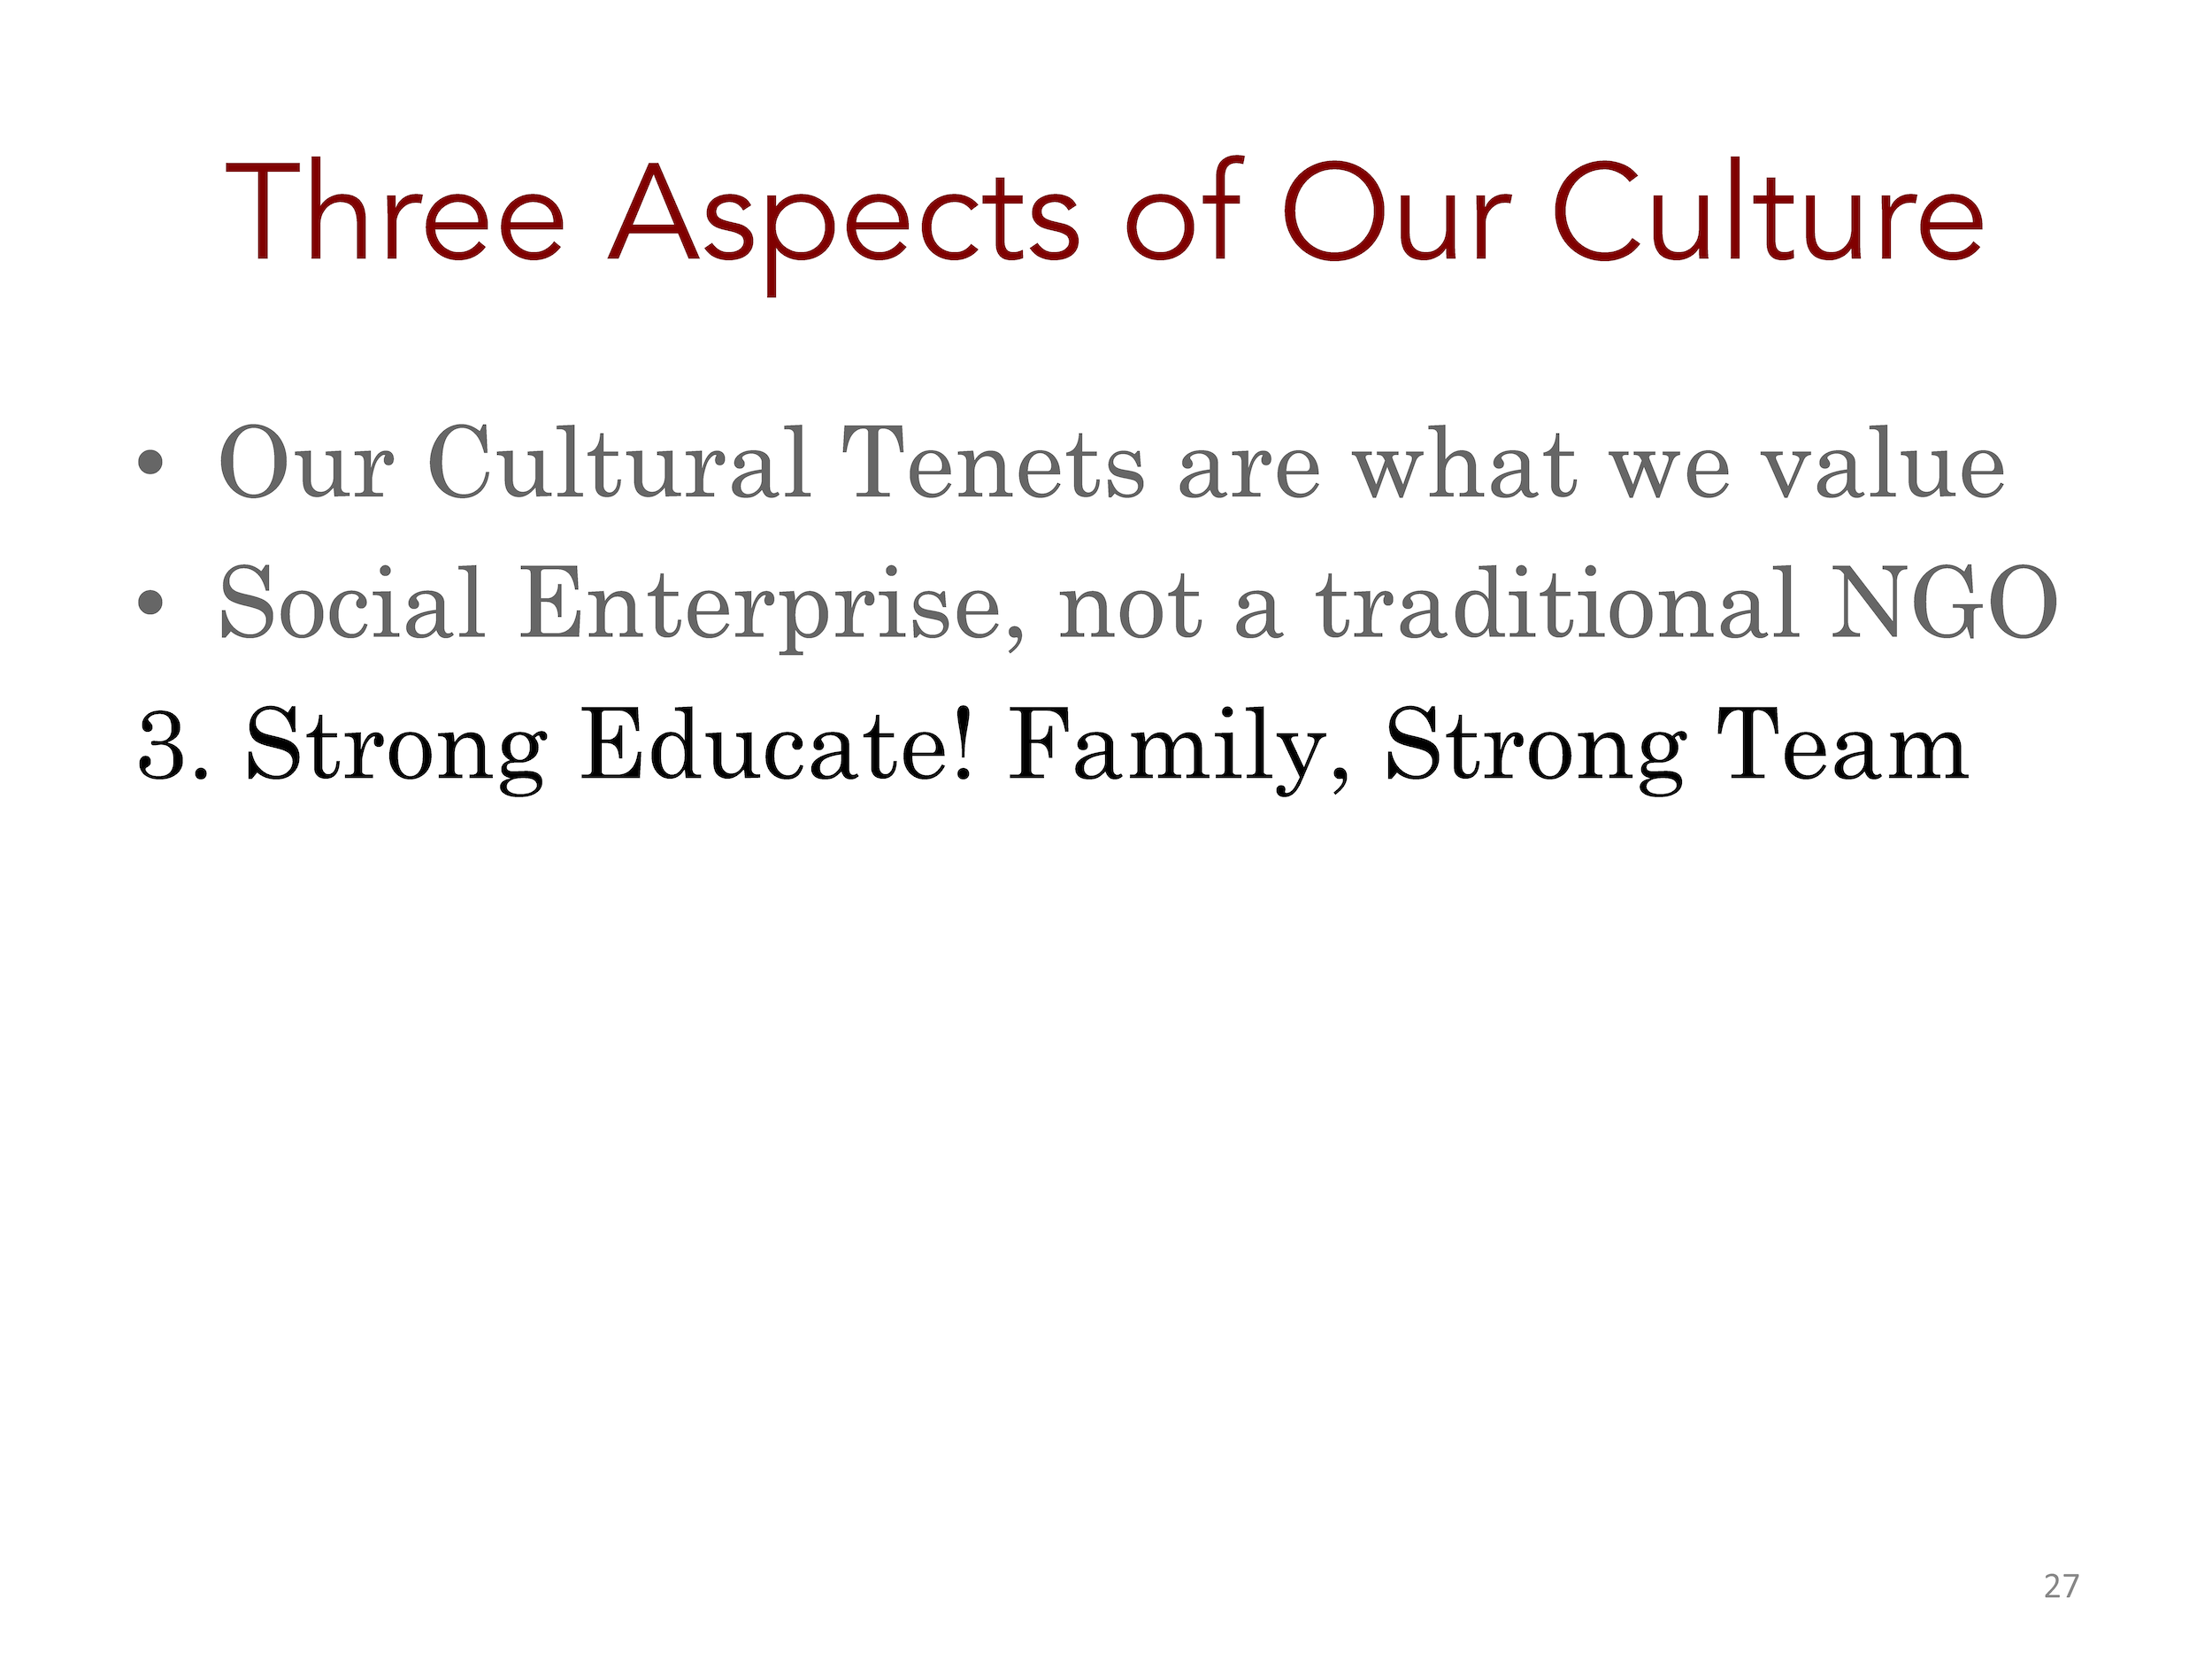 Educate! Culture Deck_Page_27.png